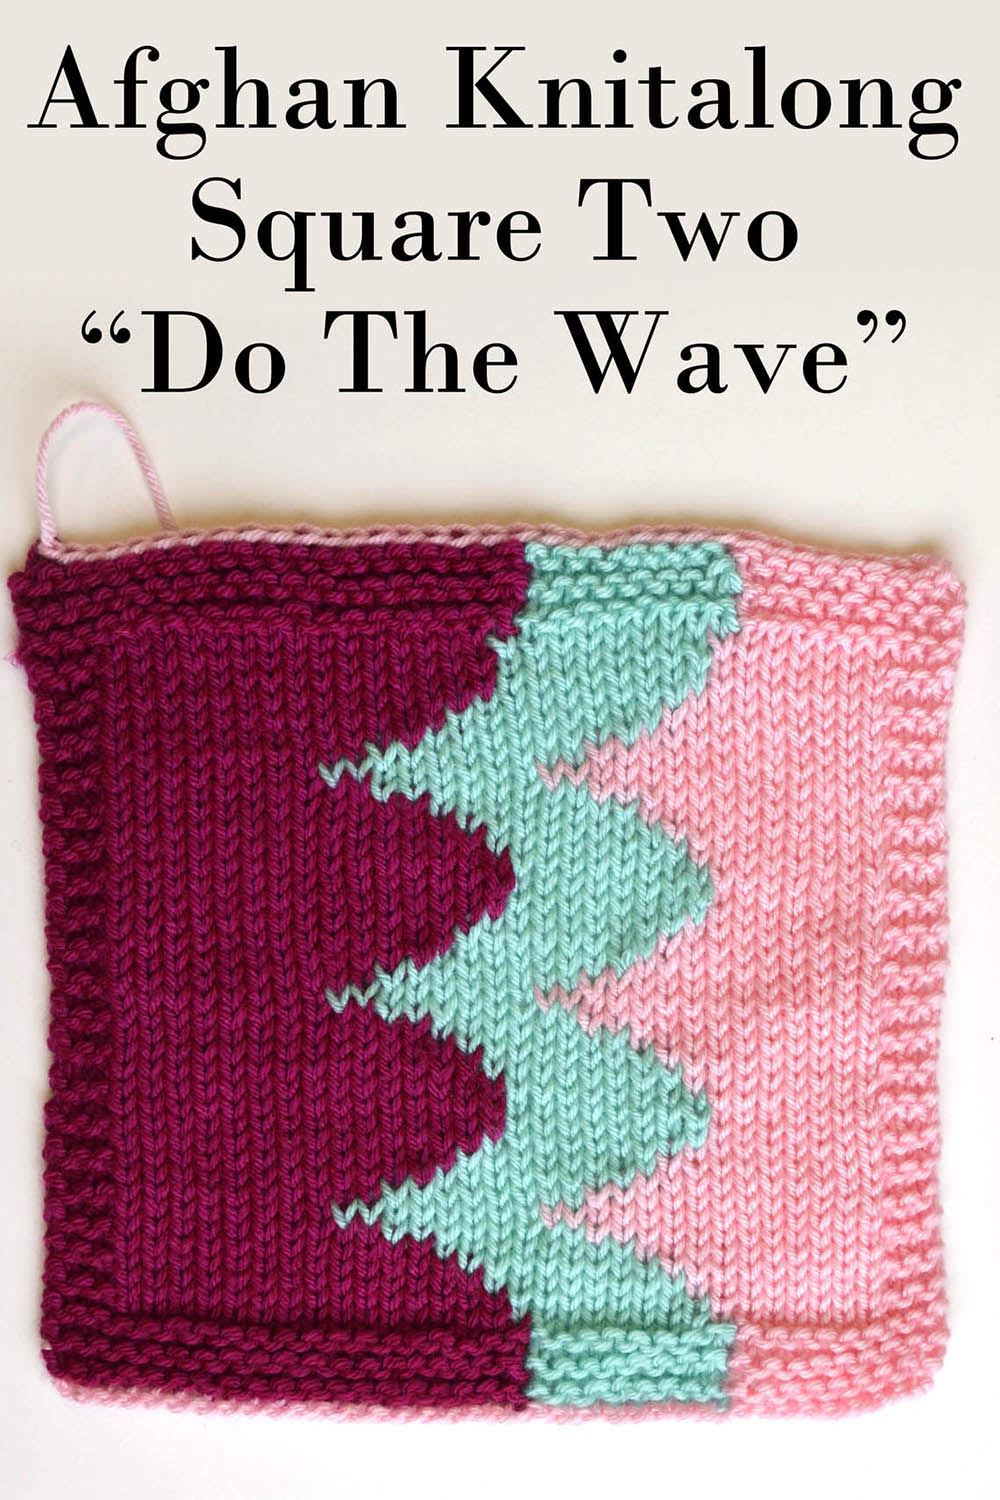 Afghan Knitalong Square 2 - Do The Wave Pattern Universal Yarn